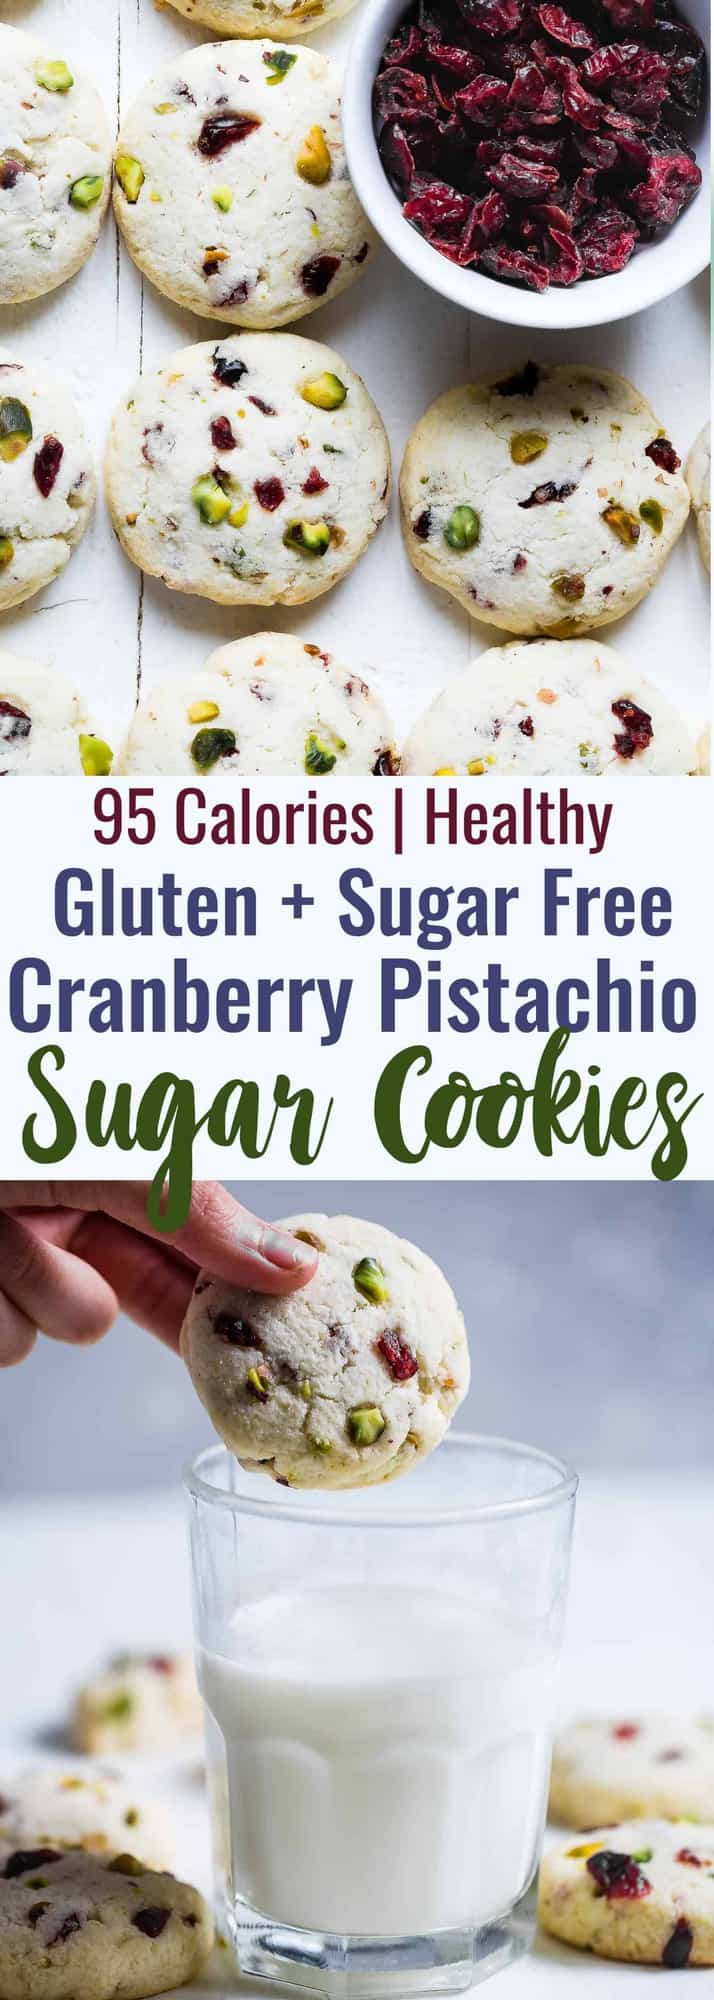 Gluten Free Sugar Free Sugar Cookies - These quick and easy, CHEWY sugar free sugar cookies have tangy and crunchy cranberries and pistachios! They're a healthier Christmas treat for only 95 calories! | #Foodfaithfitness | #Glutenfree #Sugarfree #Lowcarb #Healthy #Sugarcookies